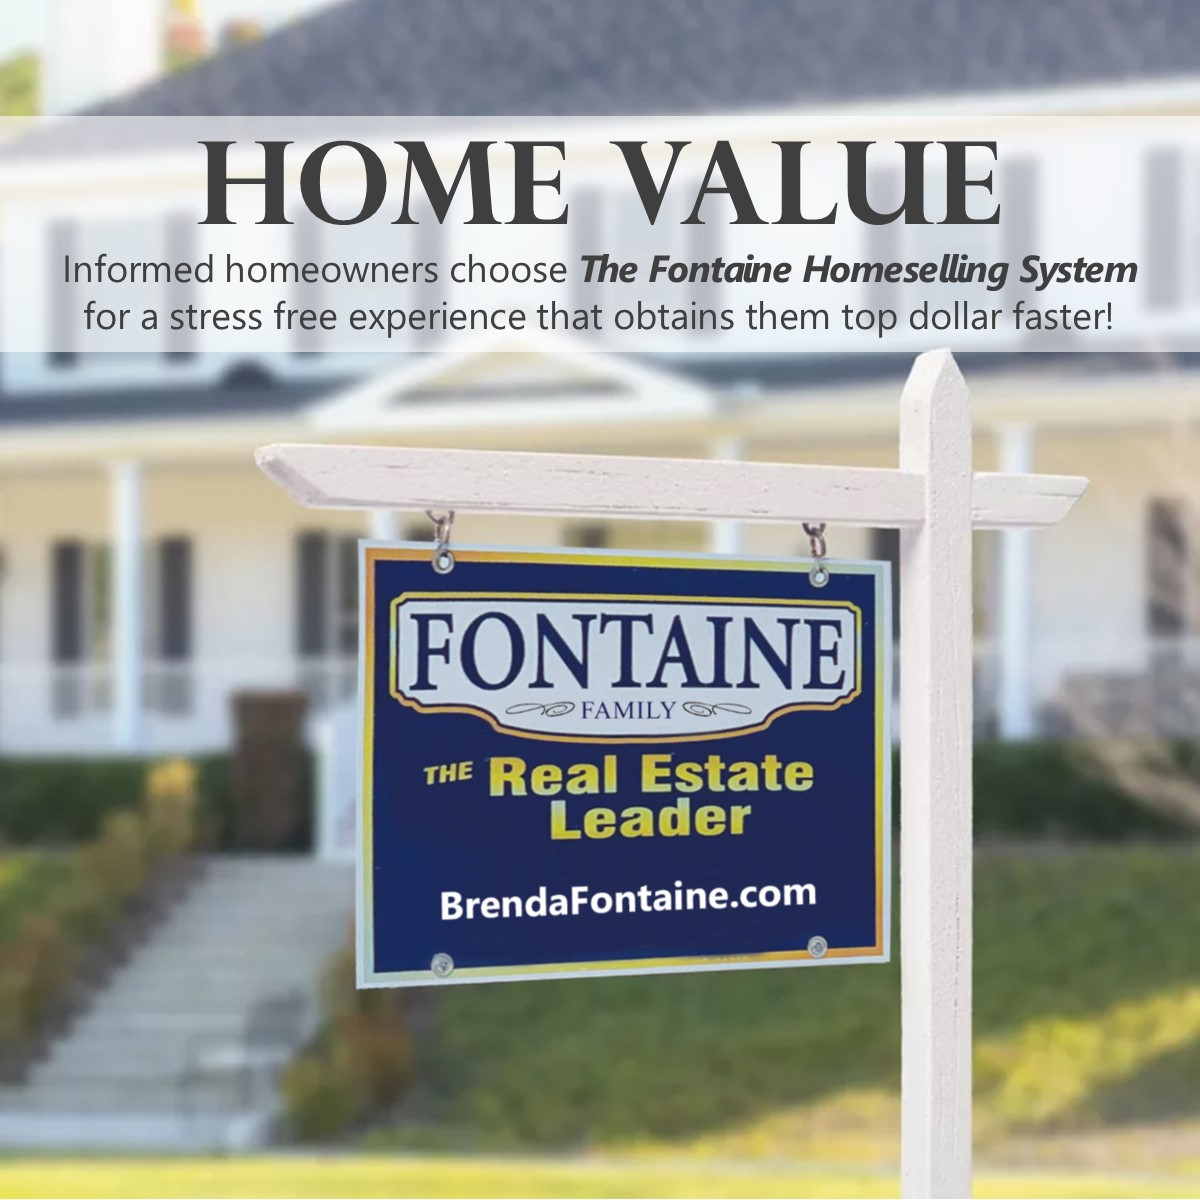 Maine Home Value - real estate leader, maine homes for sale, maine real estate, maine realtors, fontaine family, fontaine family